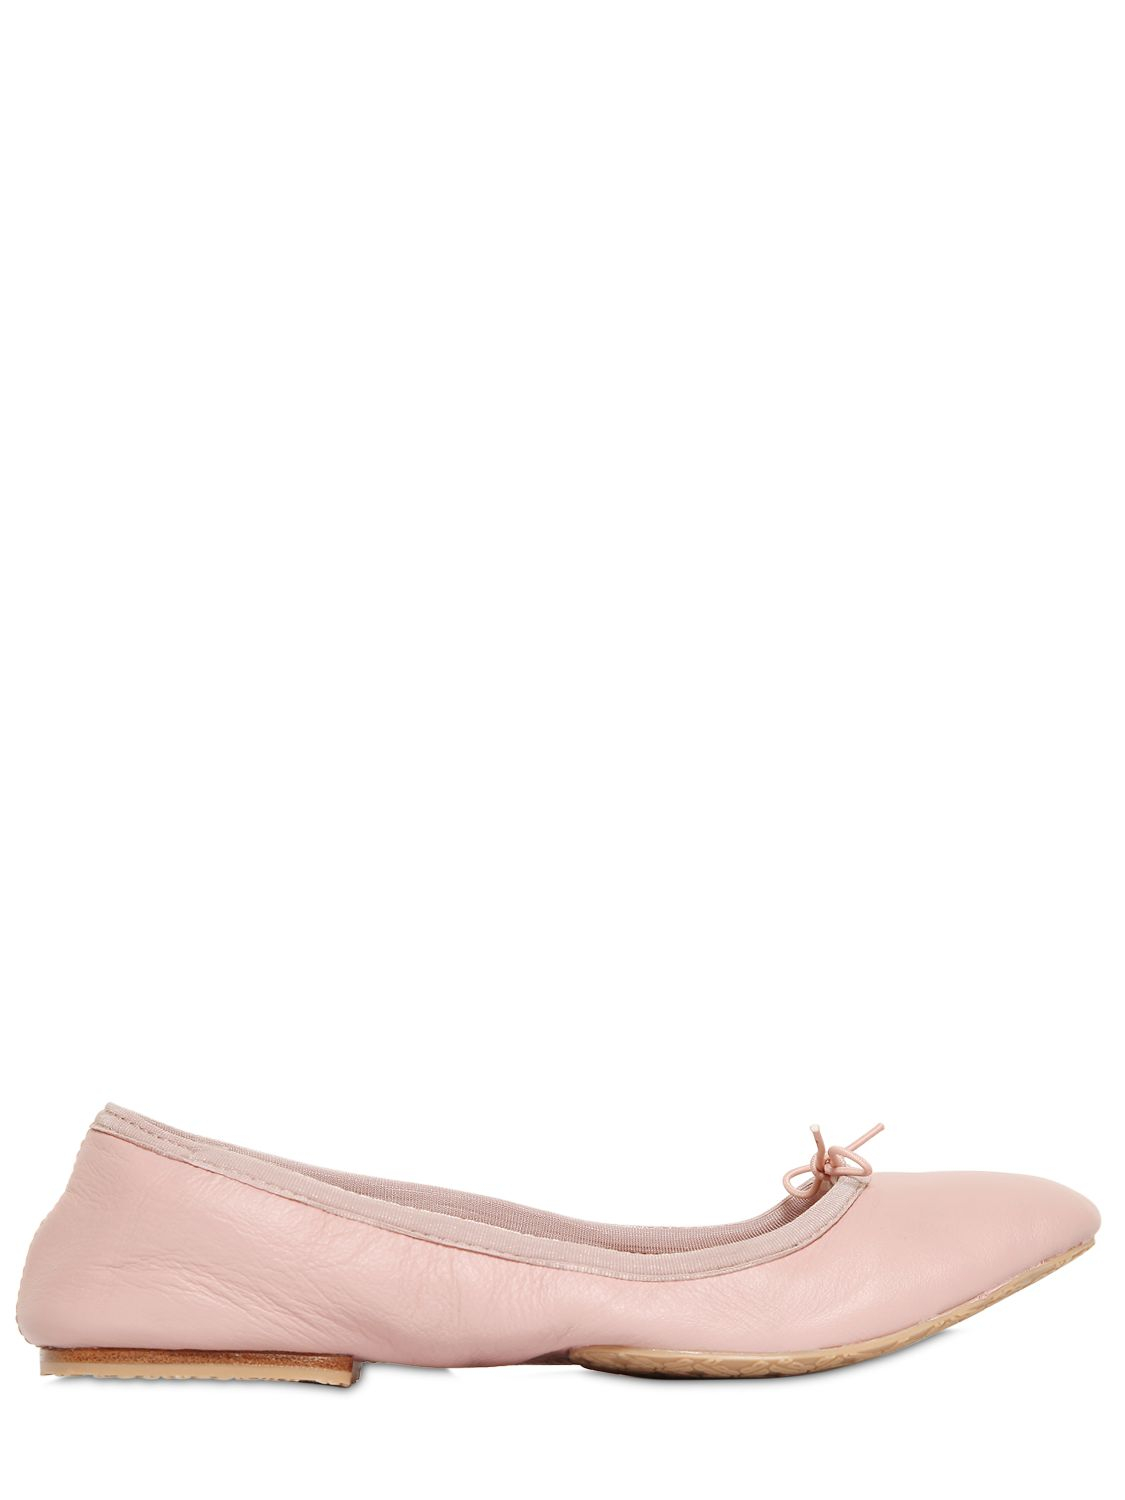 Lyst Bloch Nappa Leather Roll Up Ballerina Flats In Pink